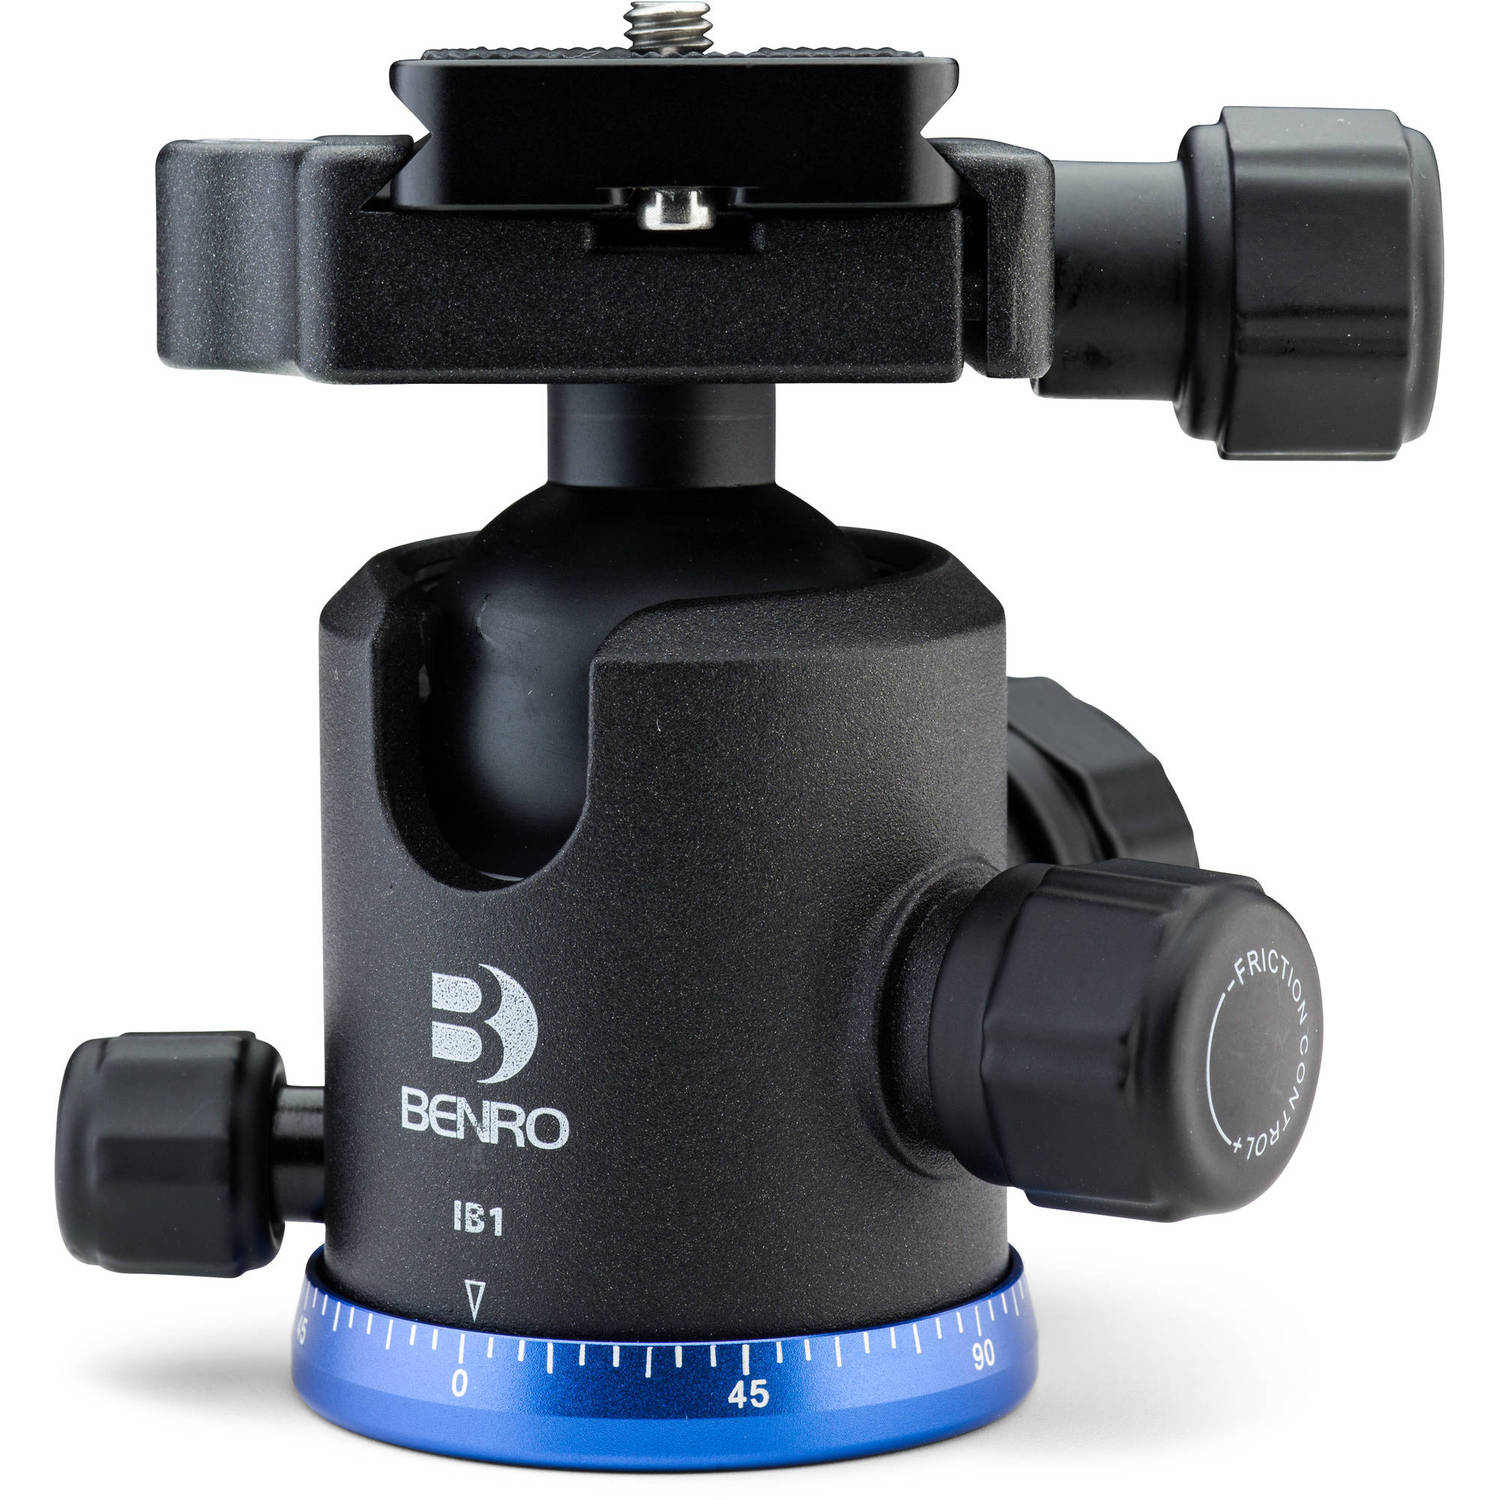 Benro IB1 Triple Action Ball Head 8 KG